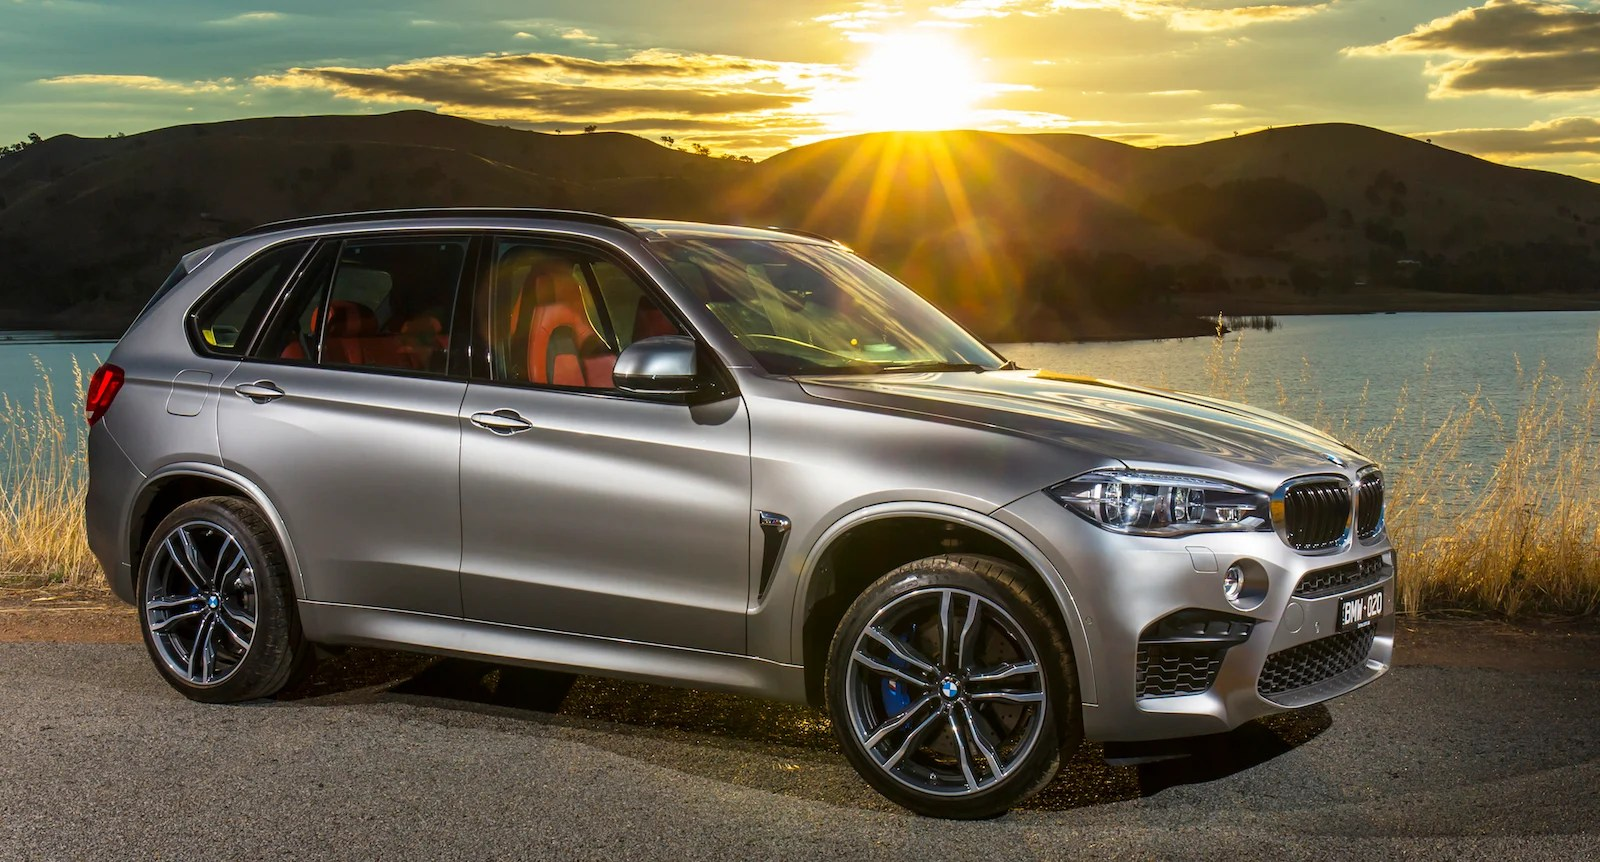 Bmw X5m Wallpaper Hd 2015 Bmw X5 M And X6 M Review Photos Caradvice